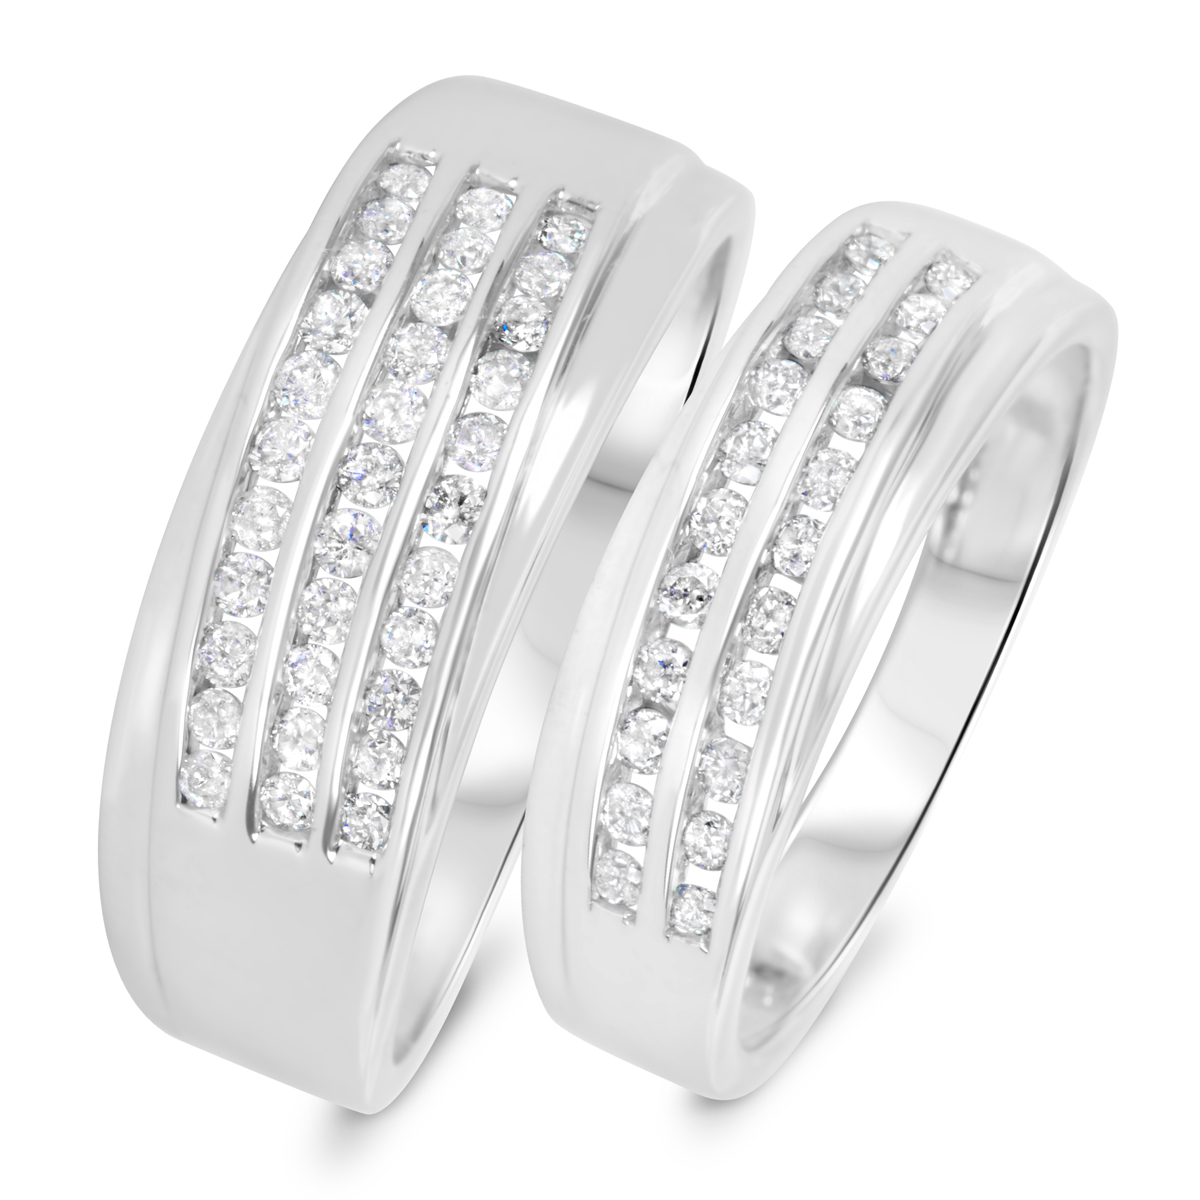 3/4 CT. T.W. Diamond His And Hers Wedding Band Set 10K White Gold